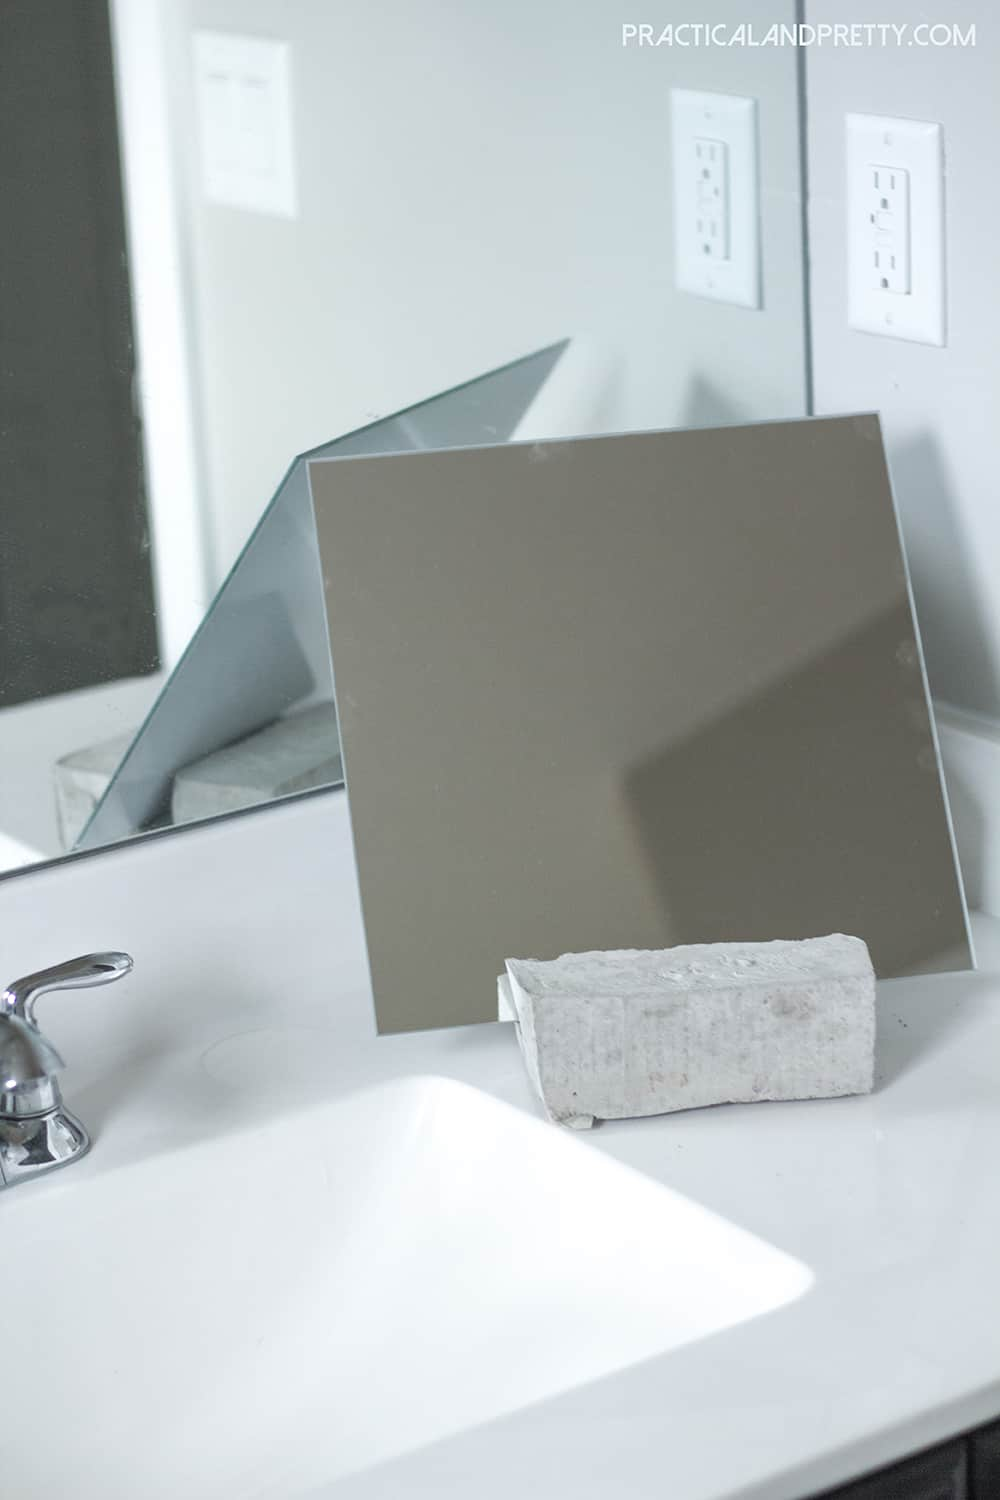 This super simple cement DIY will make your vanity that much more personalized. The industrial look is so cool too!